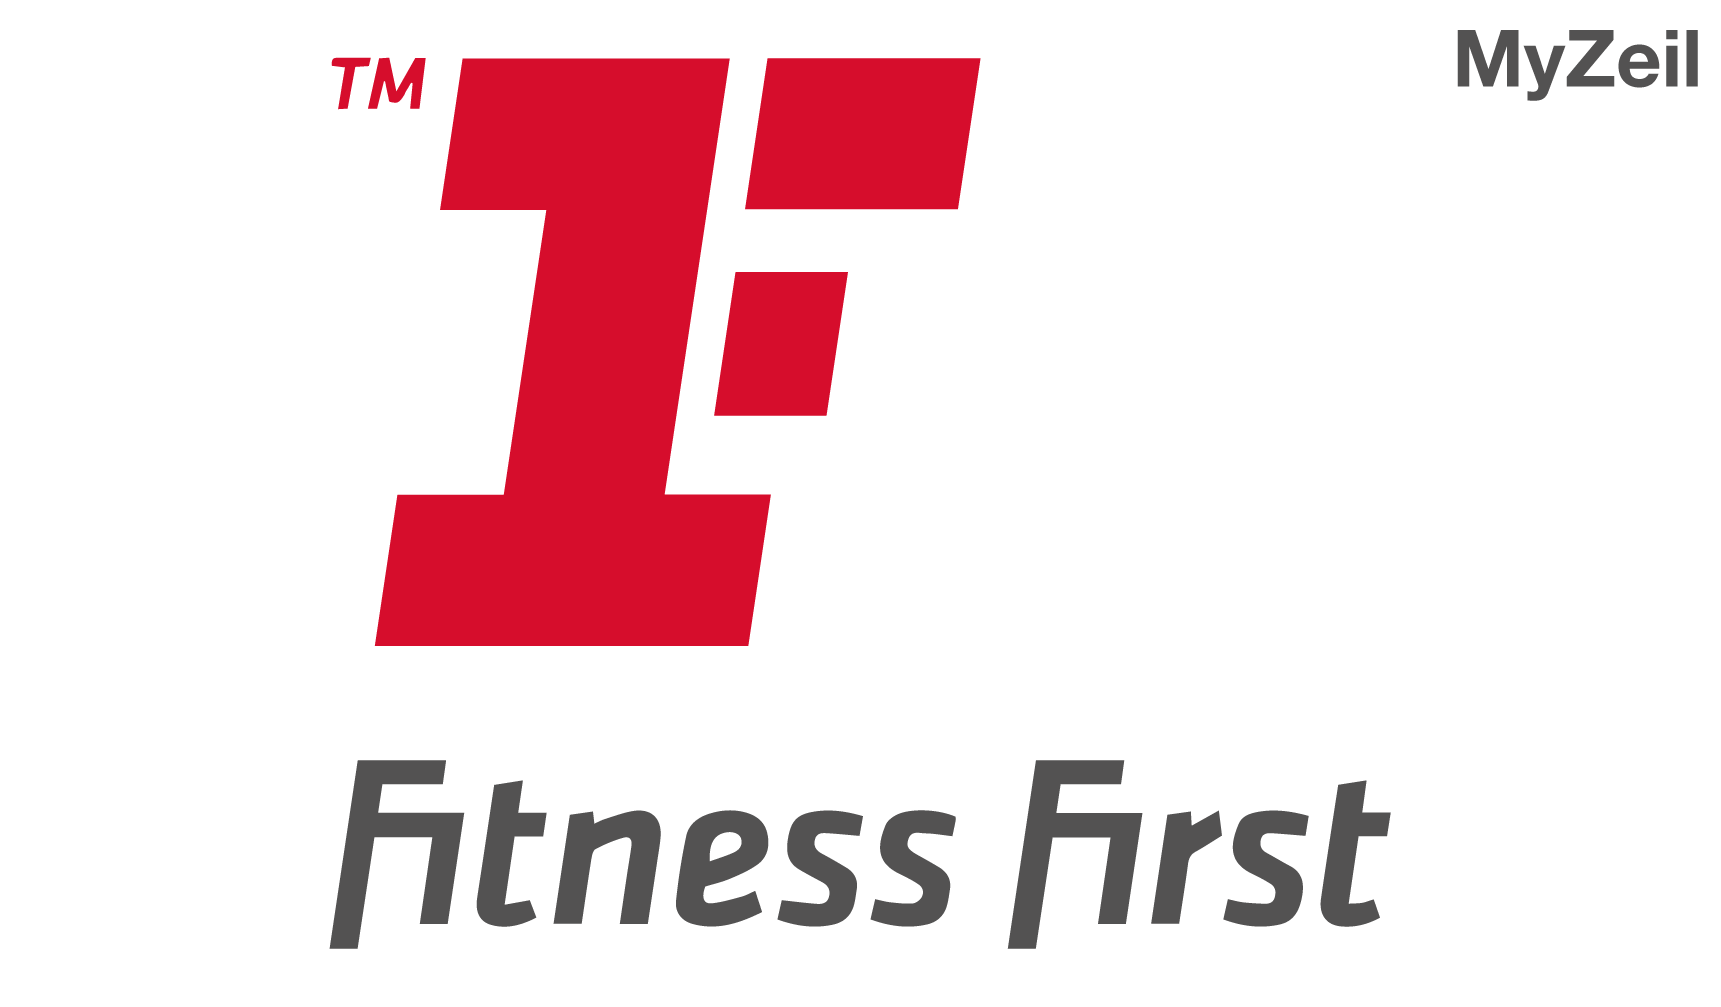 Logo des Fitness First Fitnessstudio Clubs MyZeil, in der MyZeil in Frankfurt am Main, Partner von FEFLOGX Sportswear.